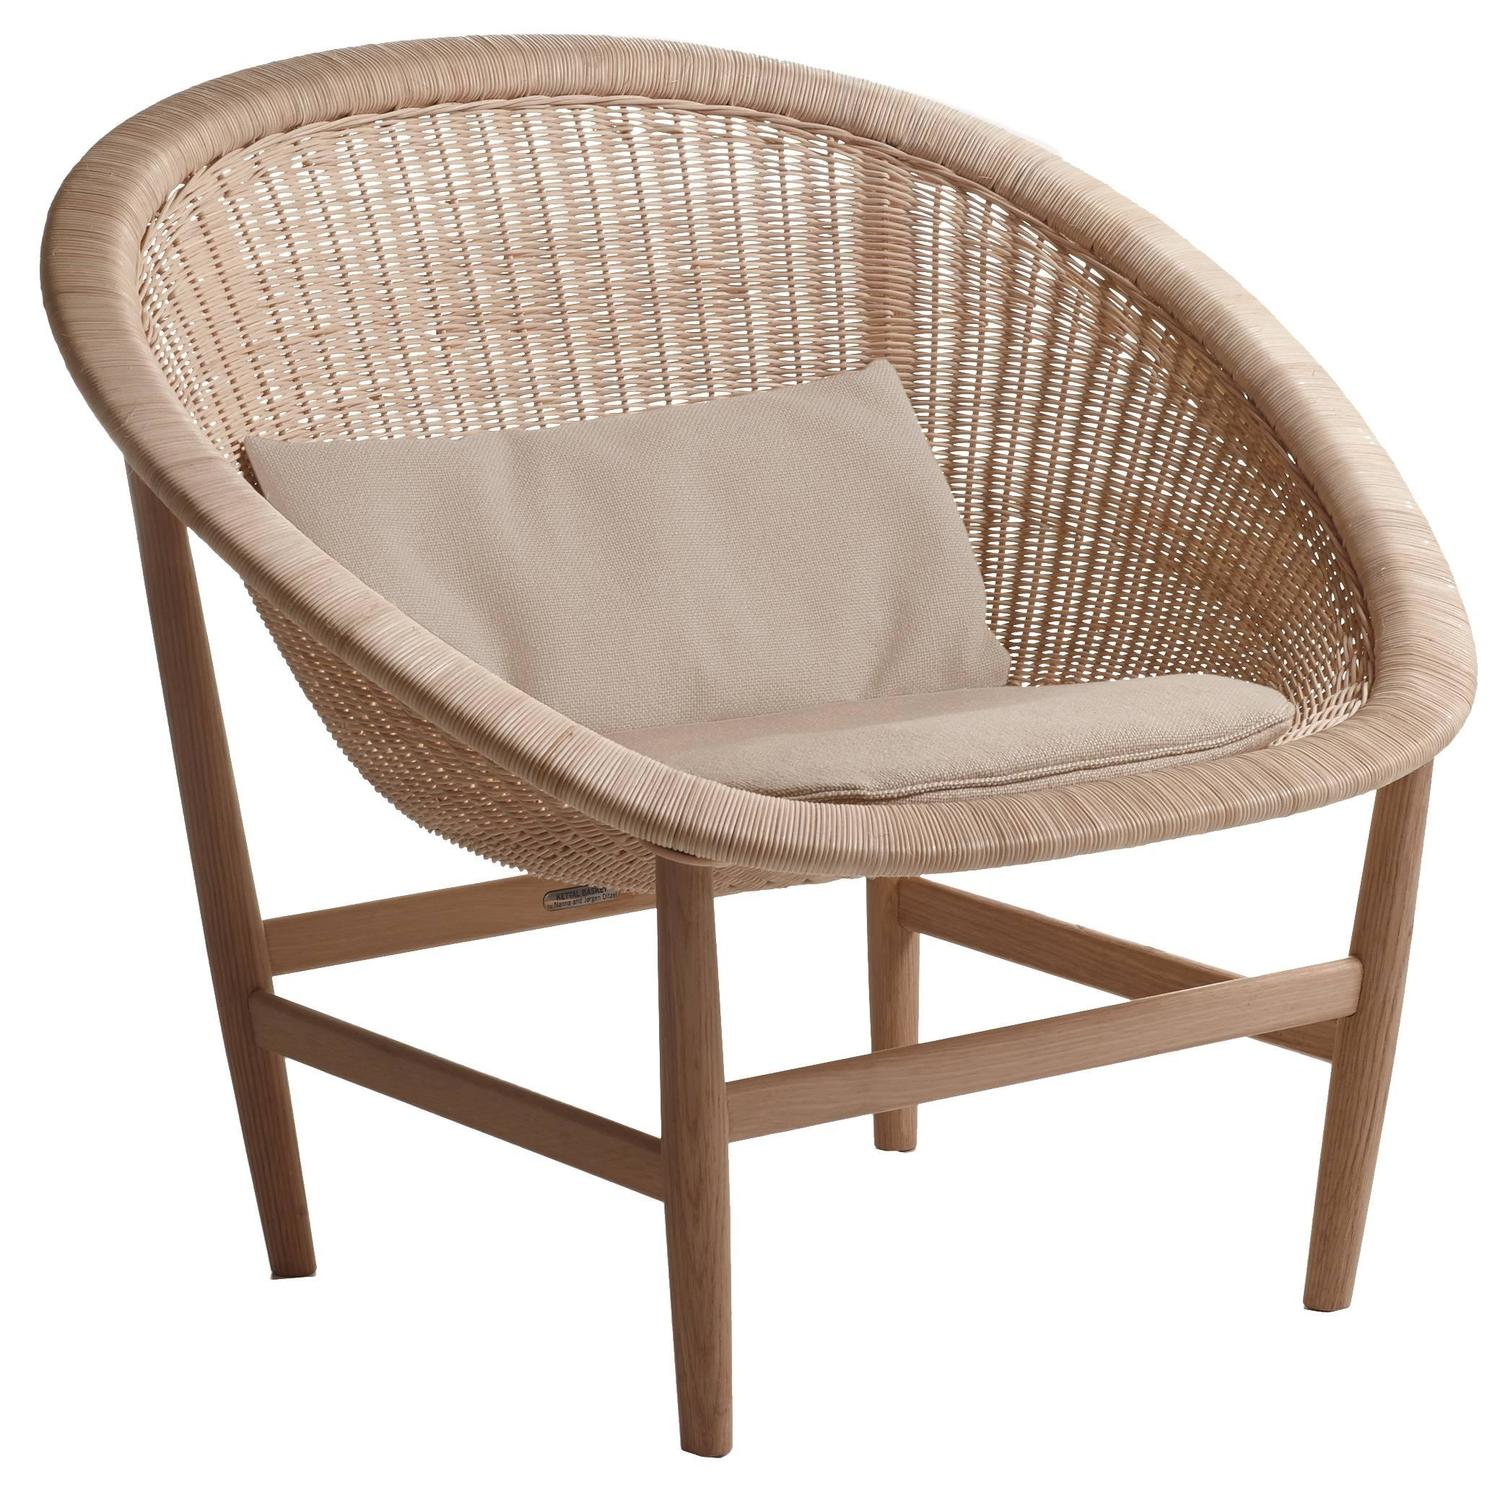 kettal basket chair for indoor or outdoor use for sale at 1stdibs